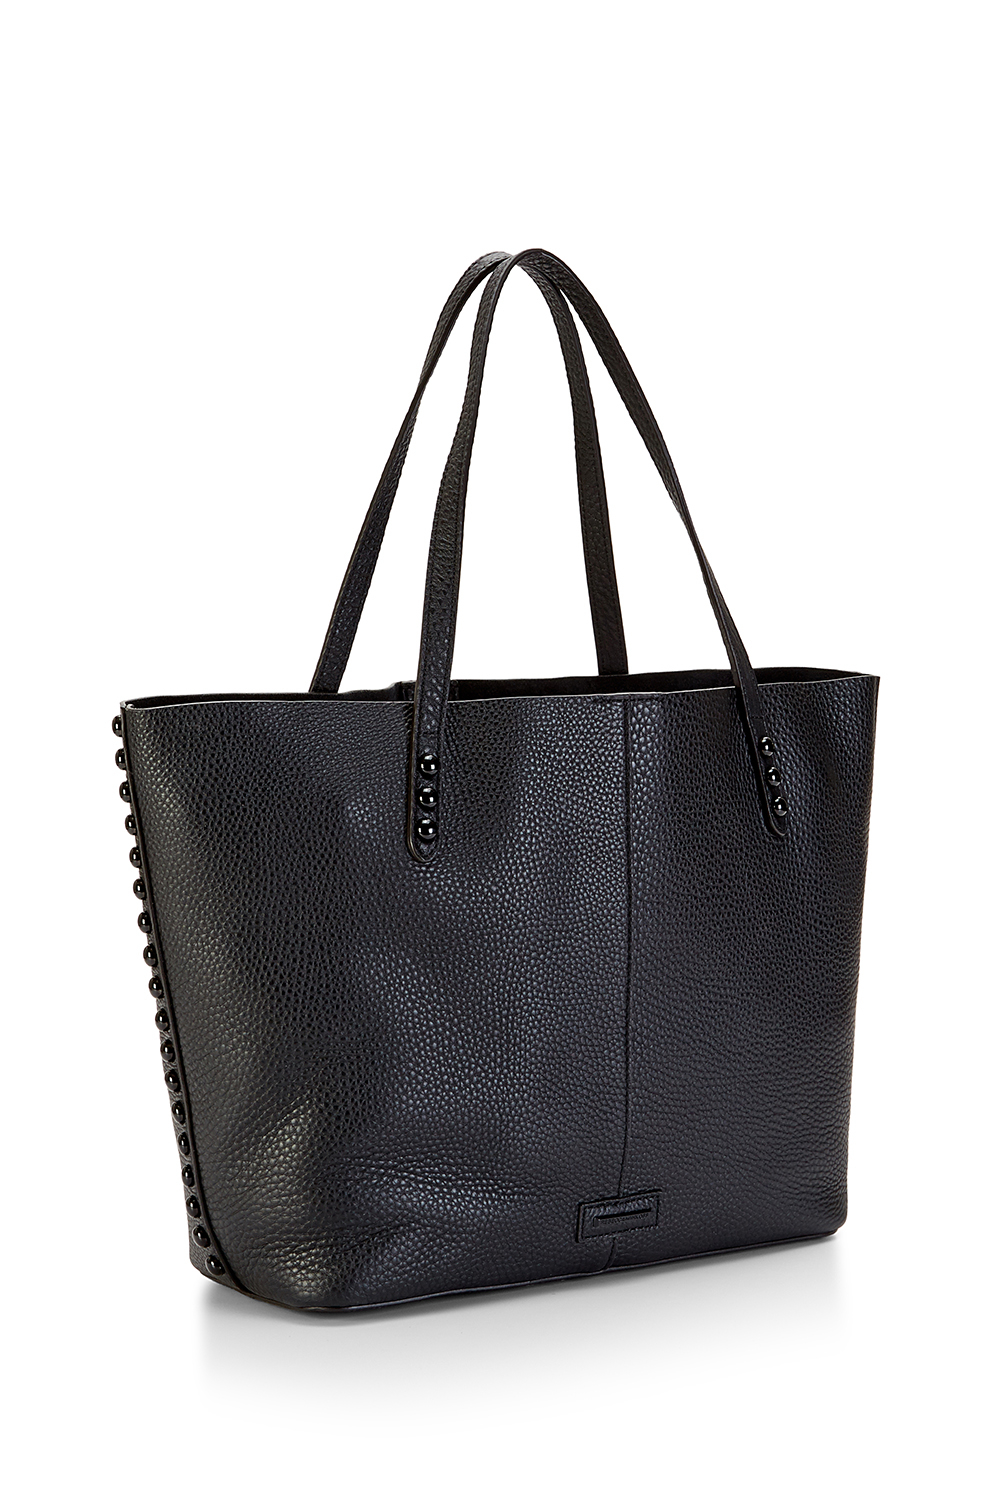 rebecca minkoff studded pebbled leather tote bag in black black black lyst. Black Bedroom Furniture Sets. Home Design Ideas